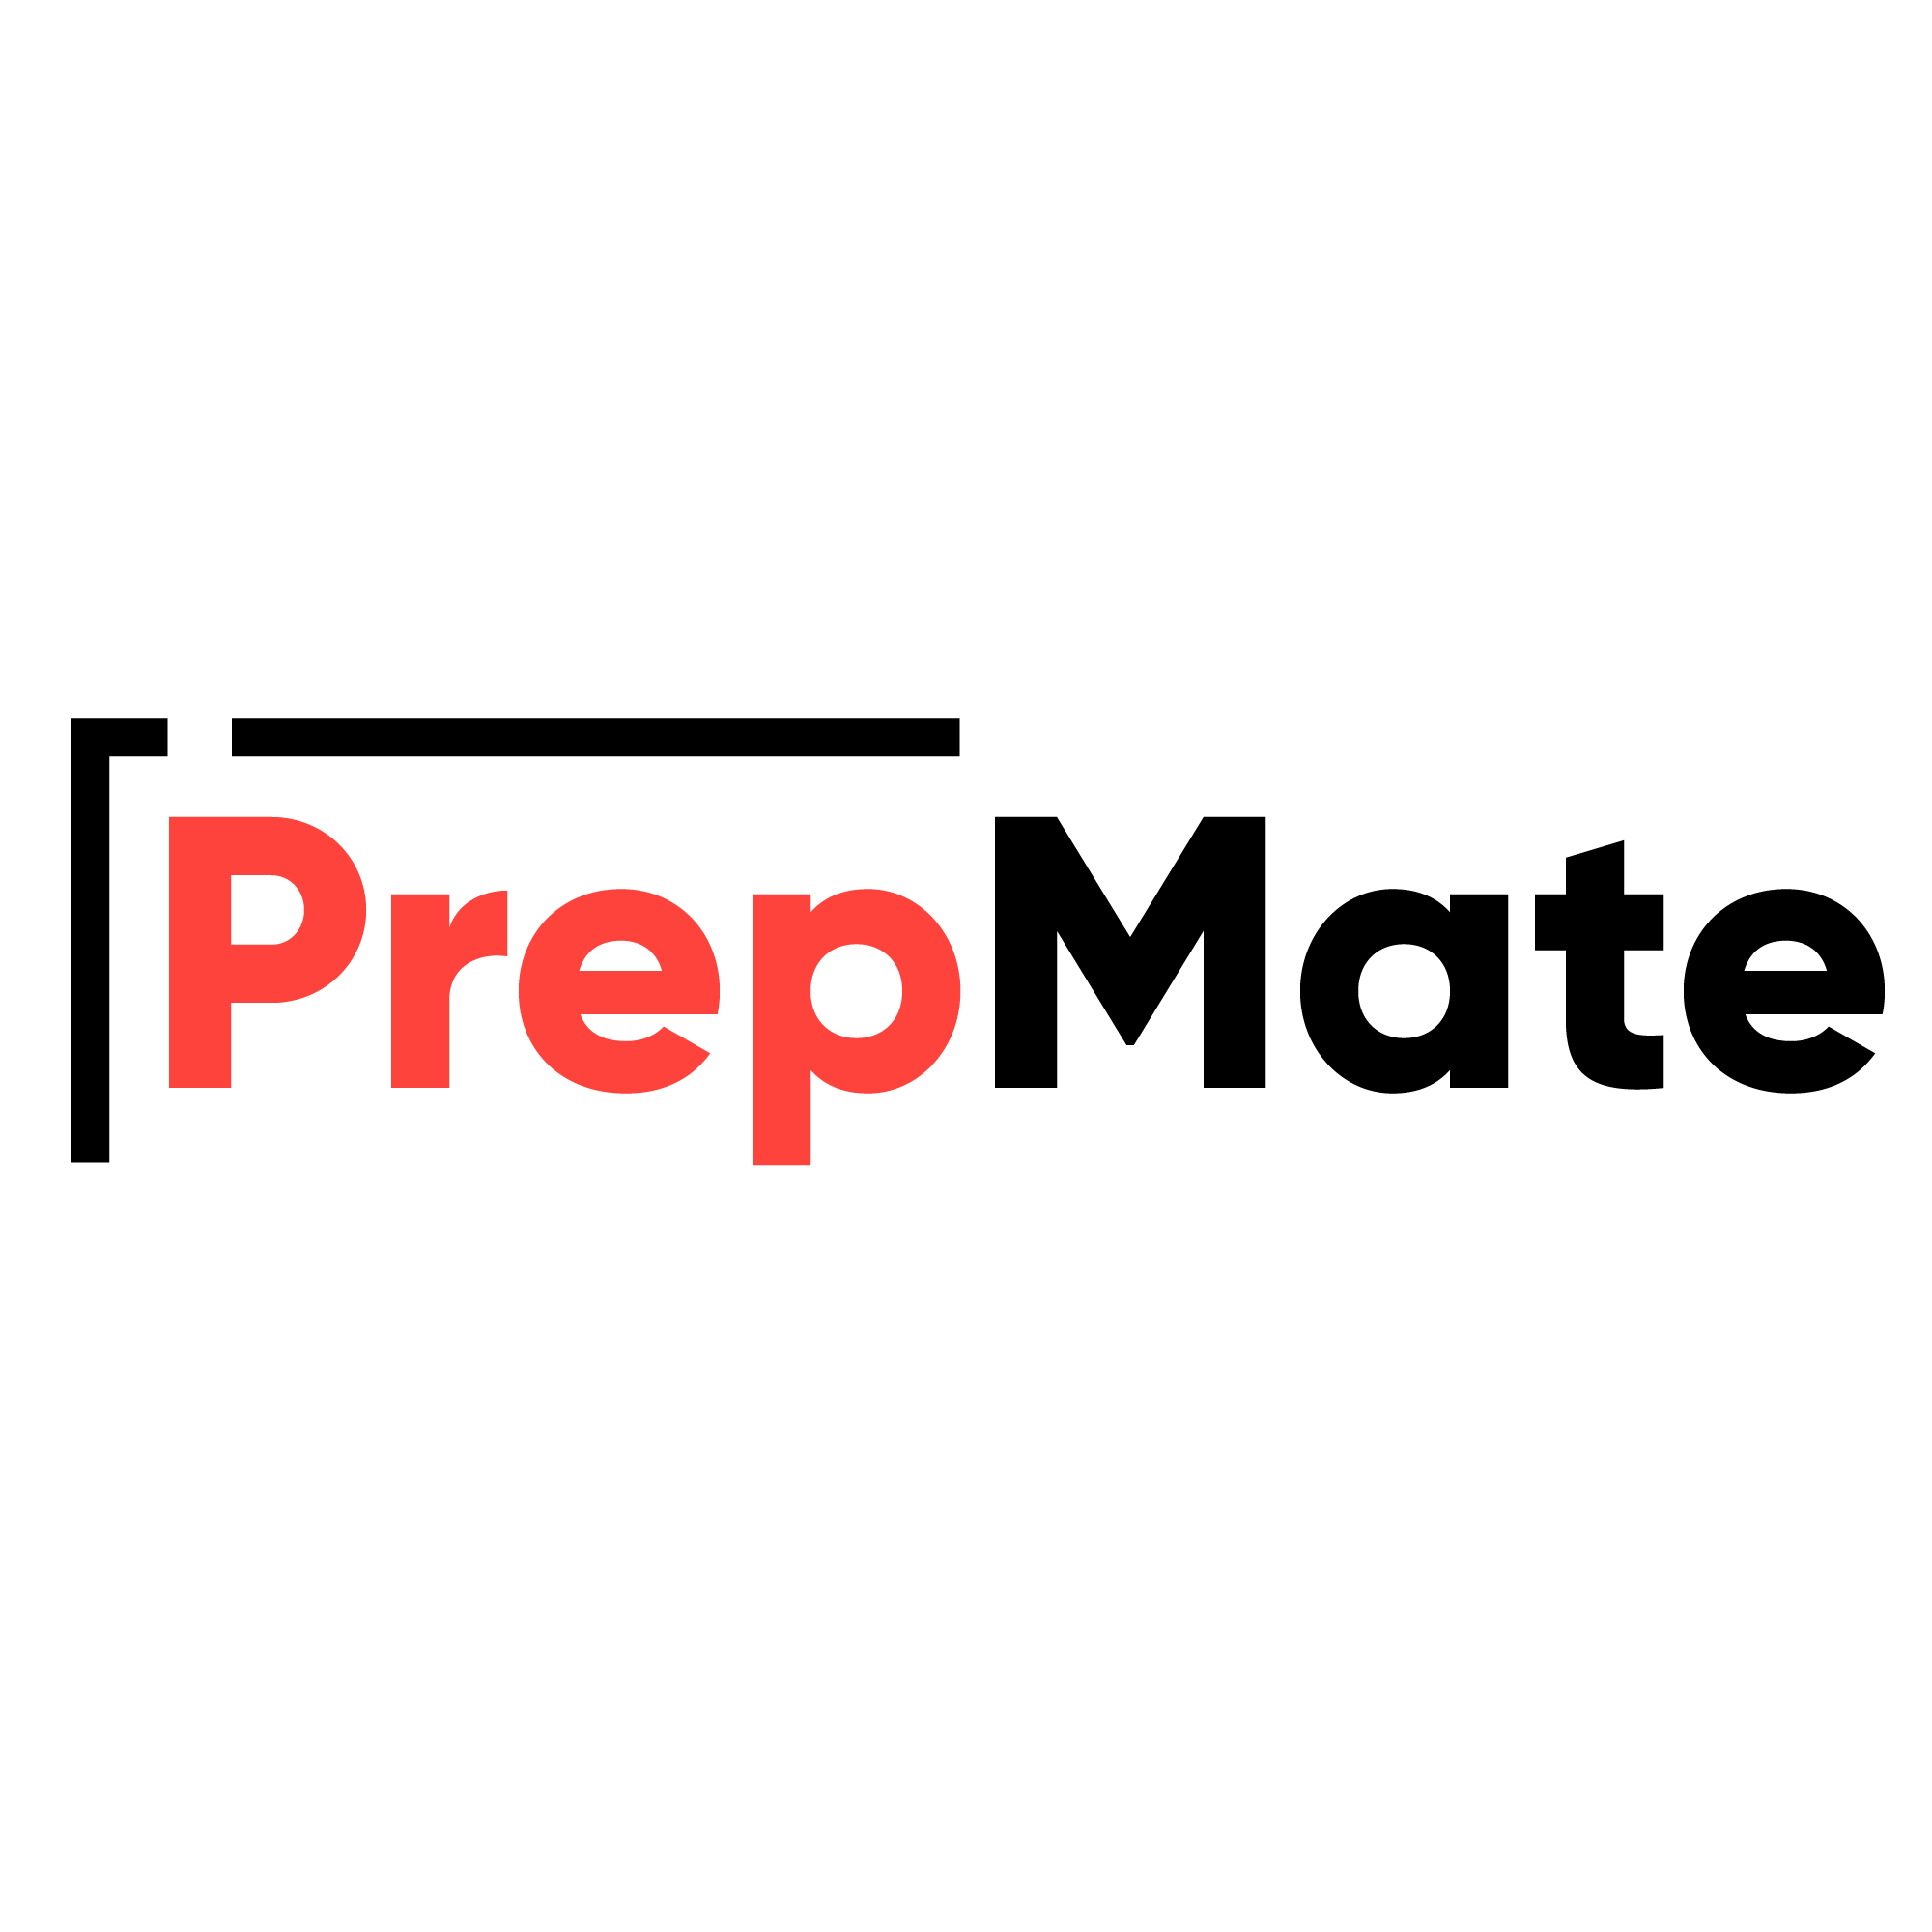 PrepMate - A multi-functional chopping board, designed to be used with only one hand. Cooking at home becomes easy and efficient with six essential functions for every recipe.